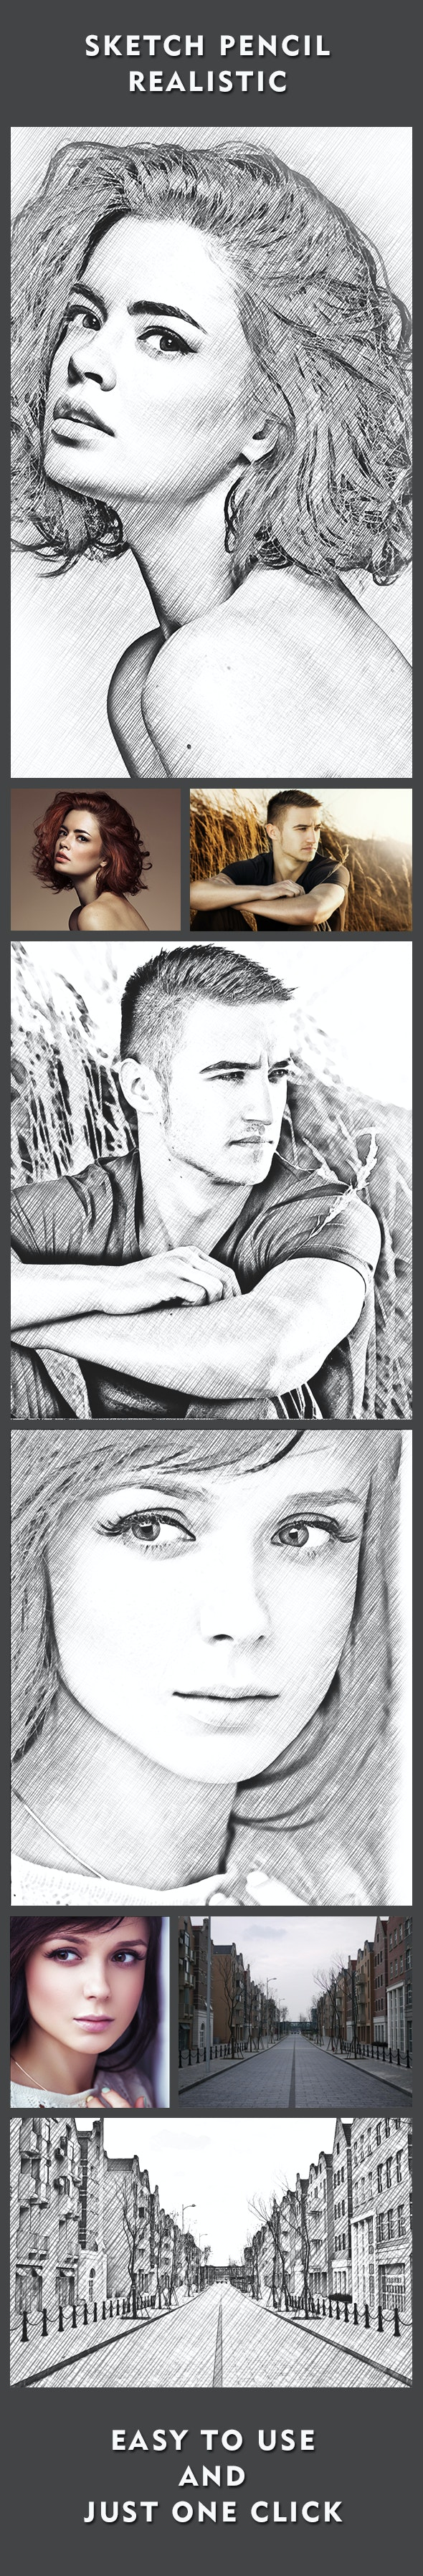 Sketch Pencil Realistic - Photo Effects Actions